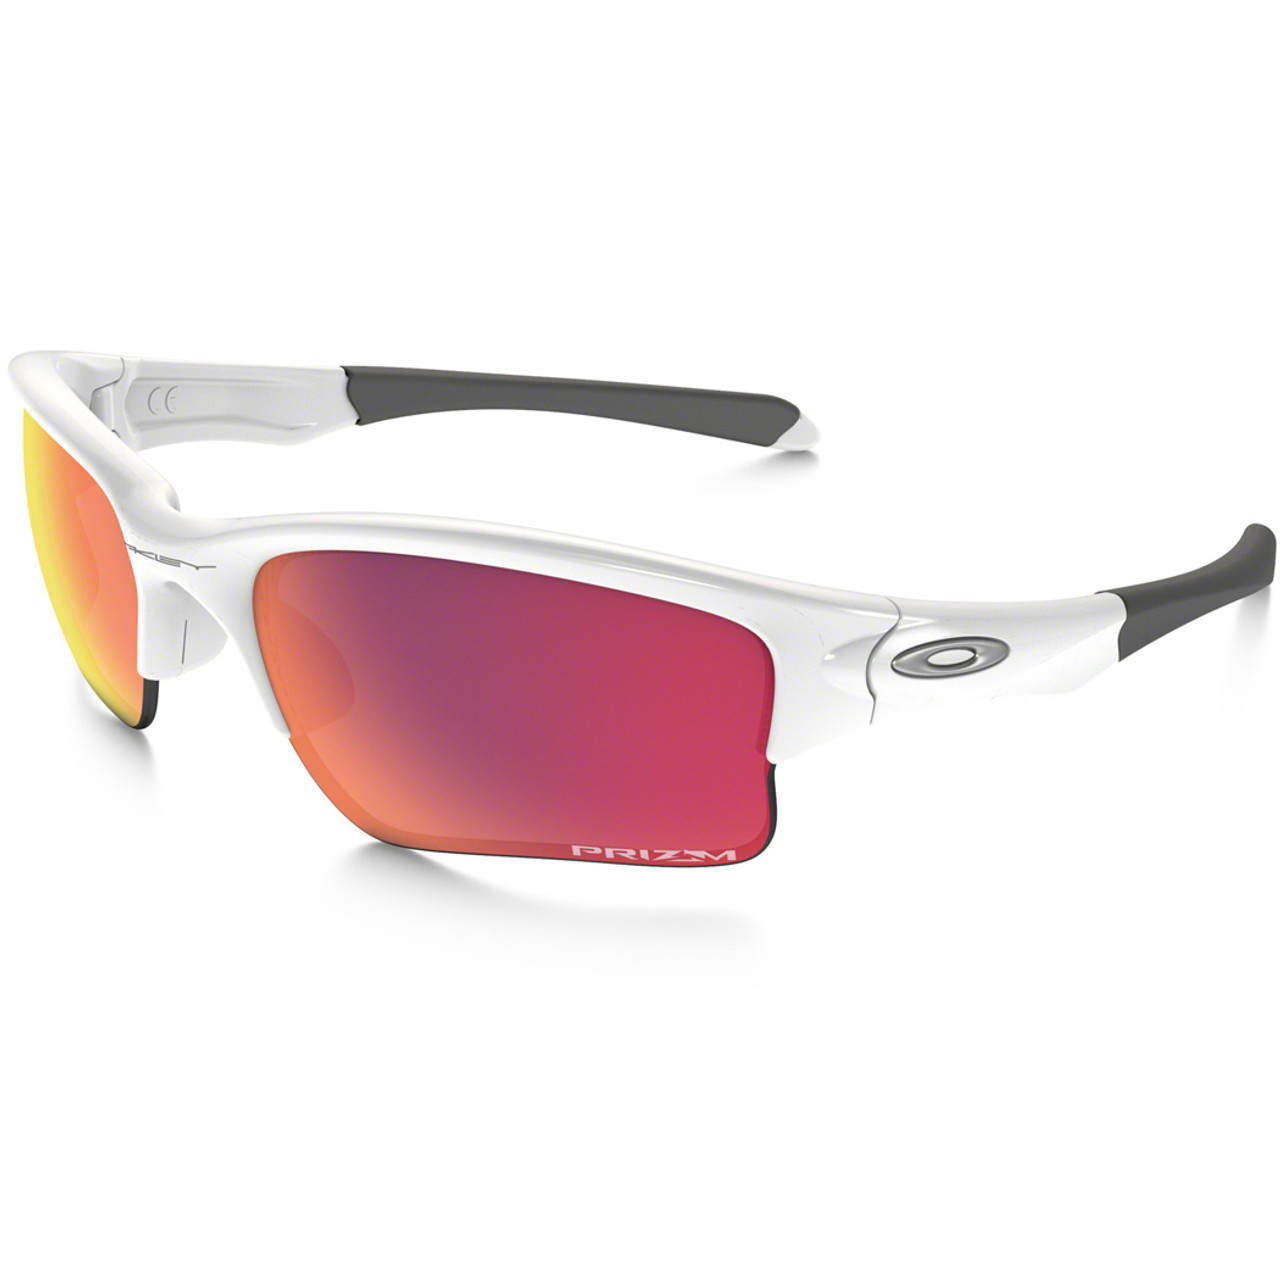 3c98bb9e911fc Oakley Sunglasses - Quarter Jacket - White Prizm Baseball - Surf and Dirt